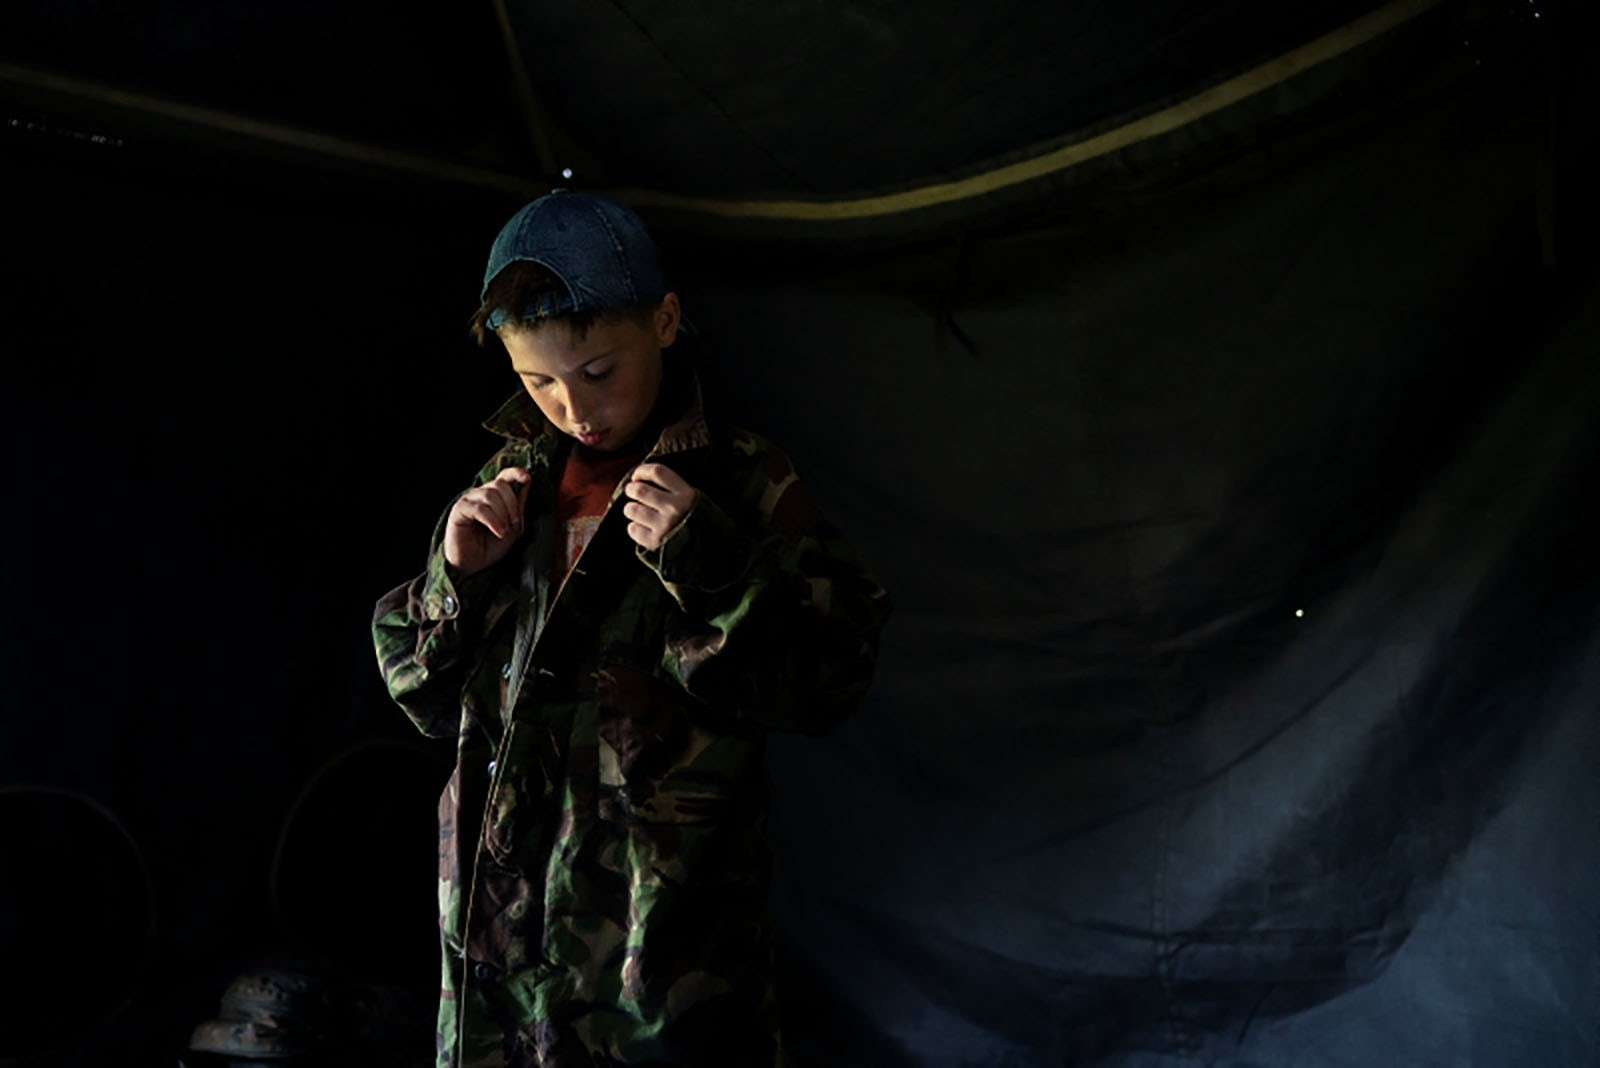 A young participant of the camp buttons up a camouflage shirt as he prepares for an exercise.